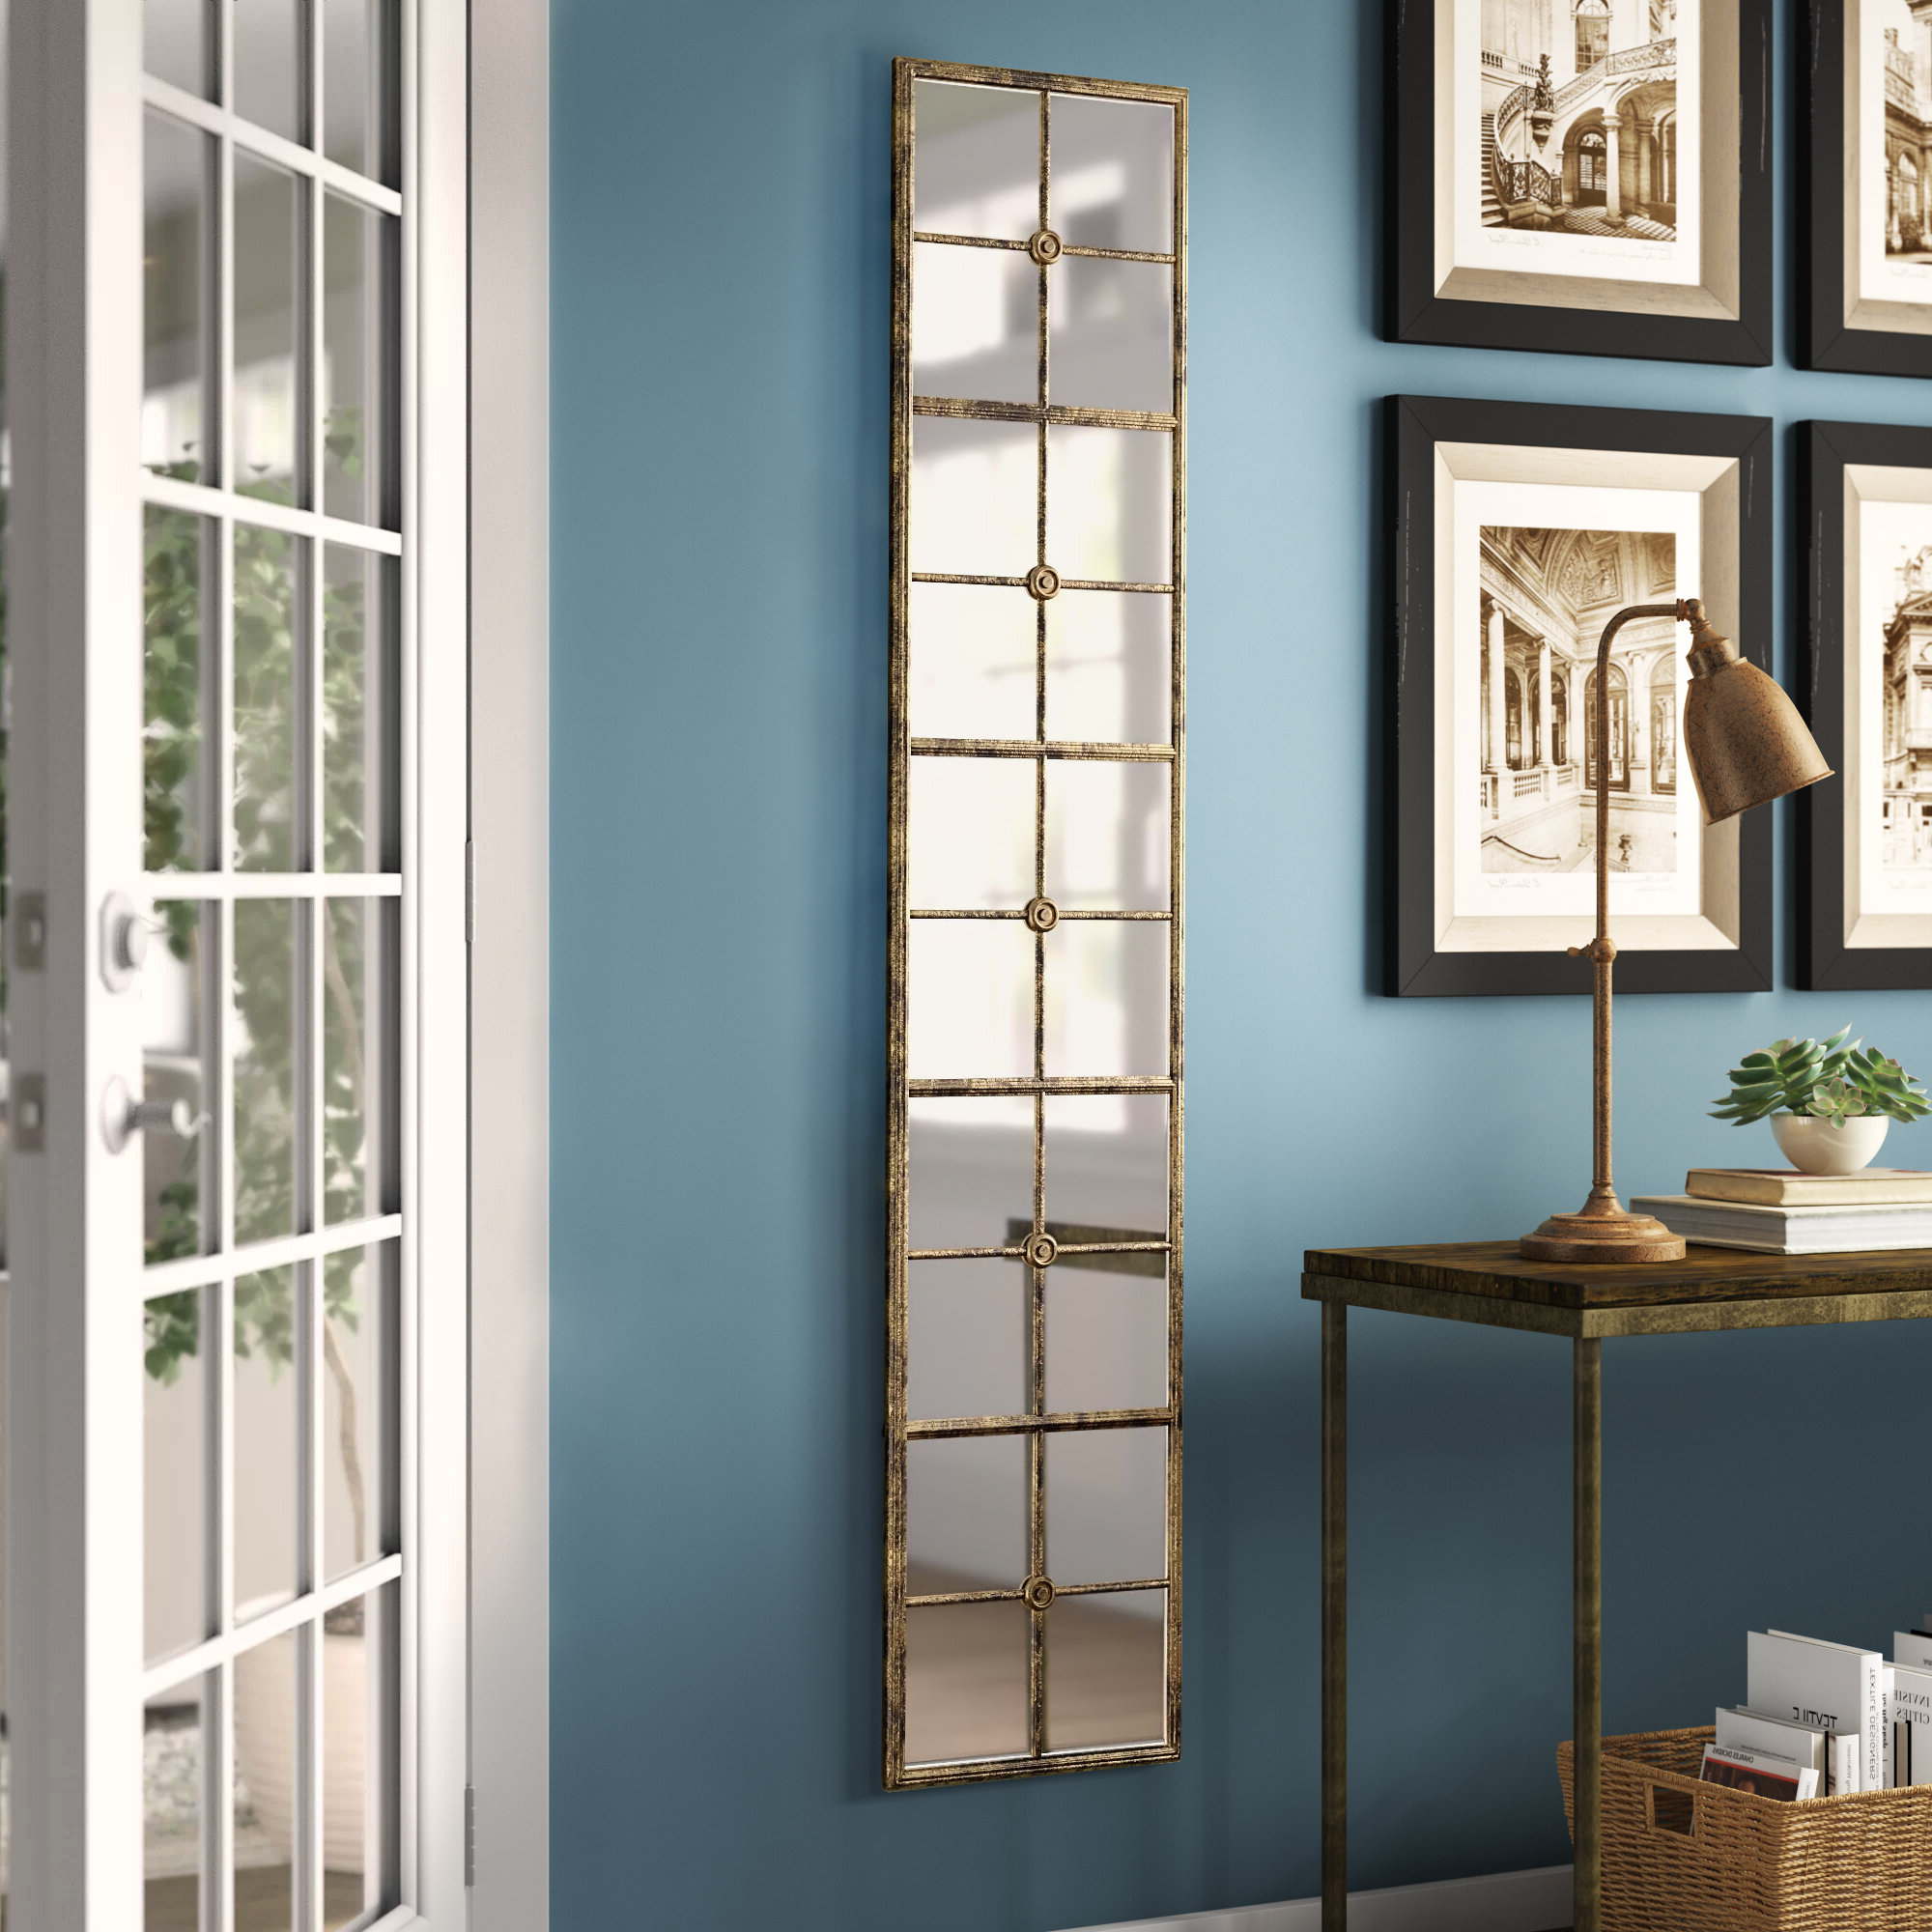 2020 Rhonda Modern & Contemporary Full Length Mirror Regarding Modern & Contemporary Full Length Mirrors (View 1 of 20)